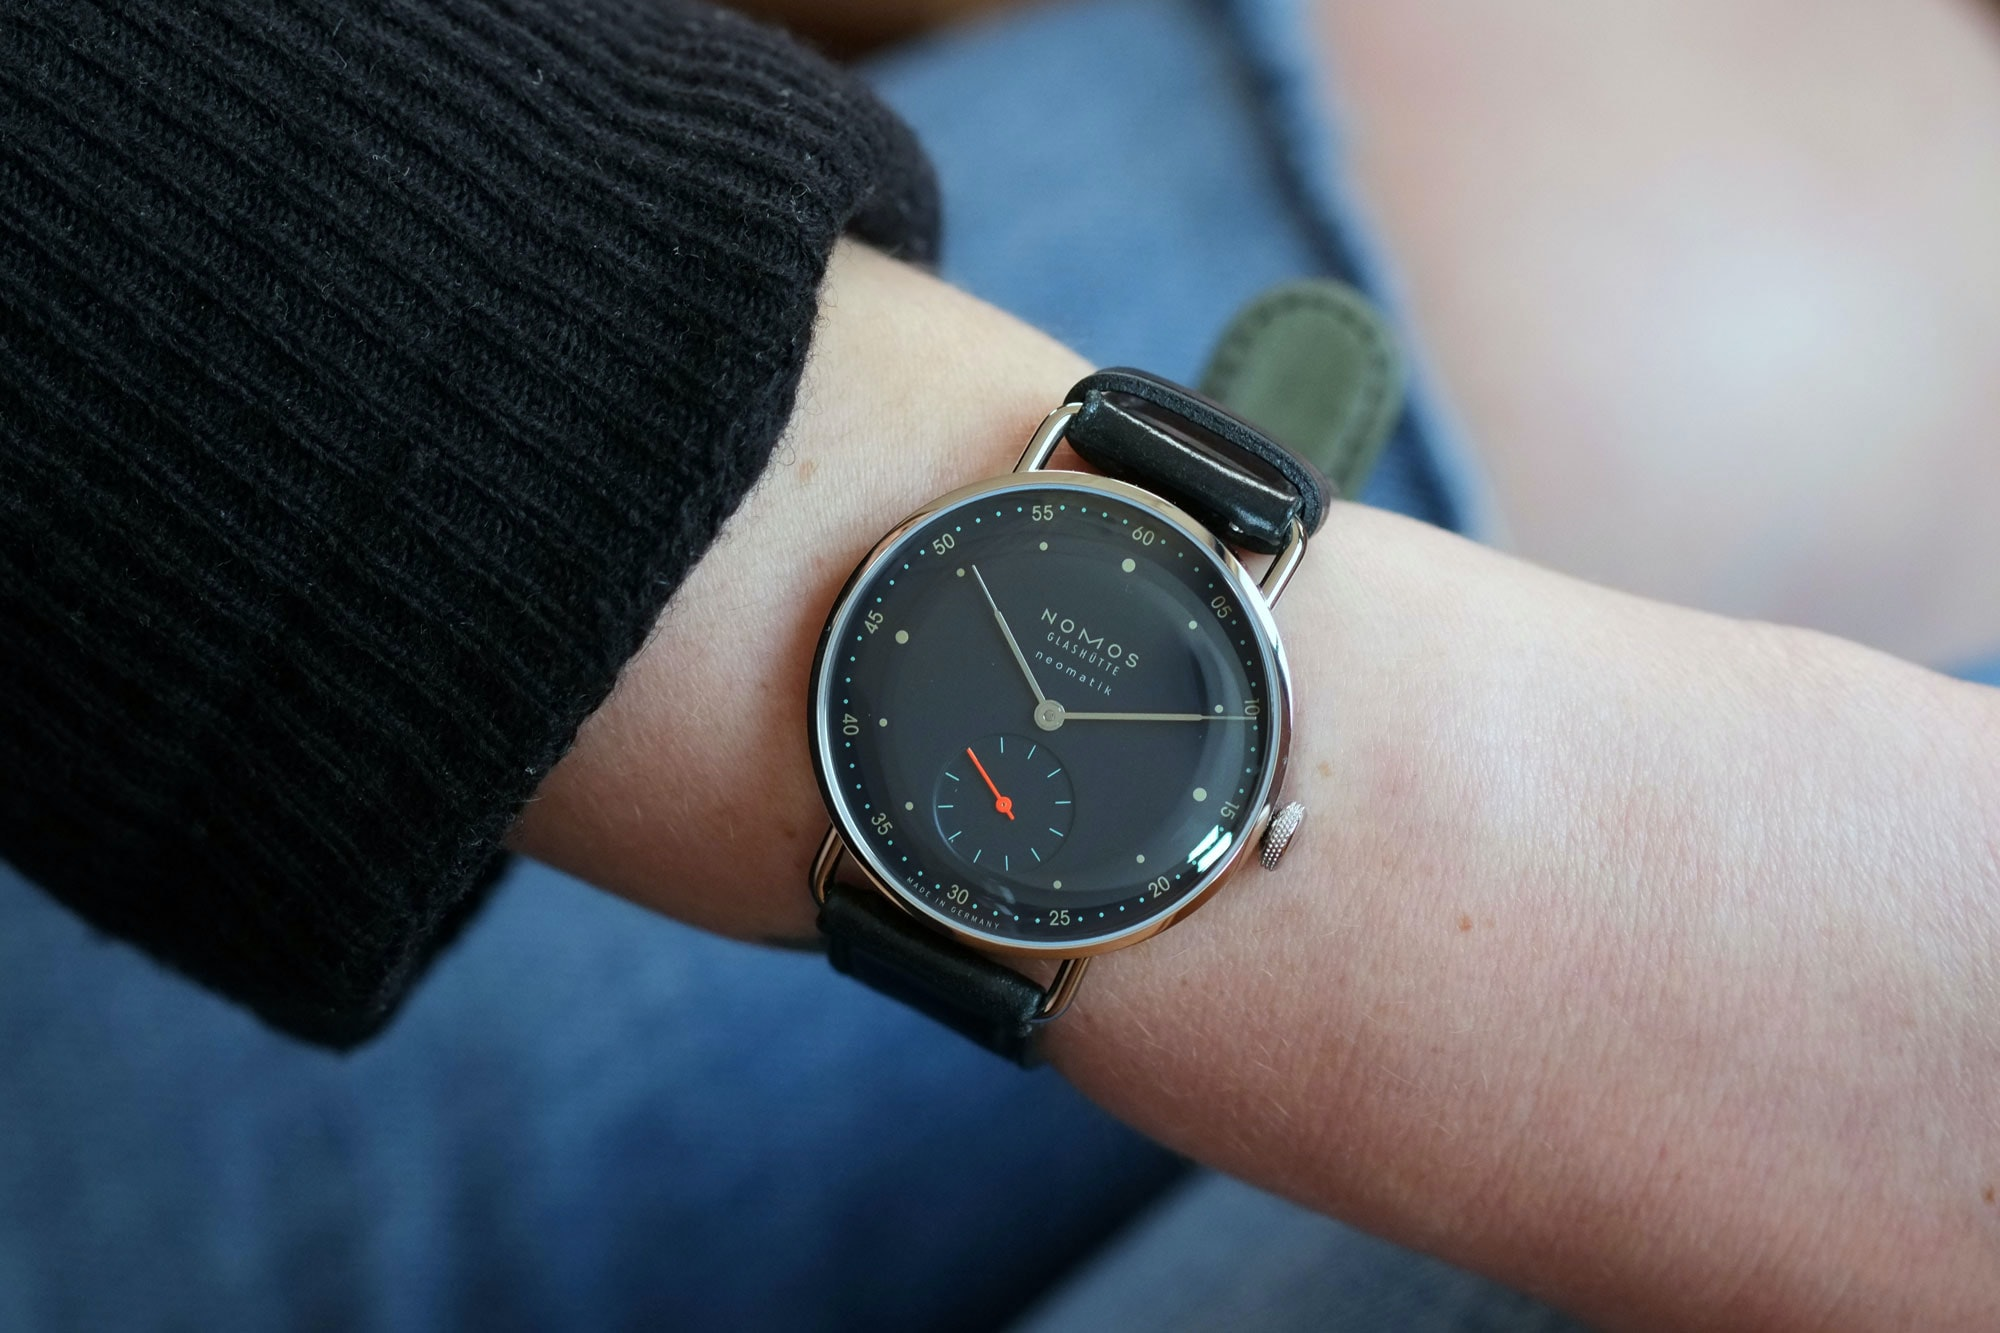 metro neomatik nachblau wristshot Hands-On: The NOMOS Nachtblau Collection, Four NOMOS Classics Get A Cool Dark Blue Treatment Hands-On: The NOMOS Nachtblau Collection, Four NOMOS Classics Get A Cool Dark Blue Treatment nomos 5